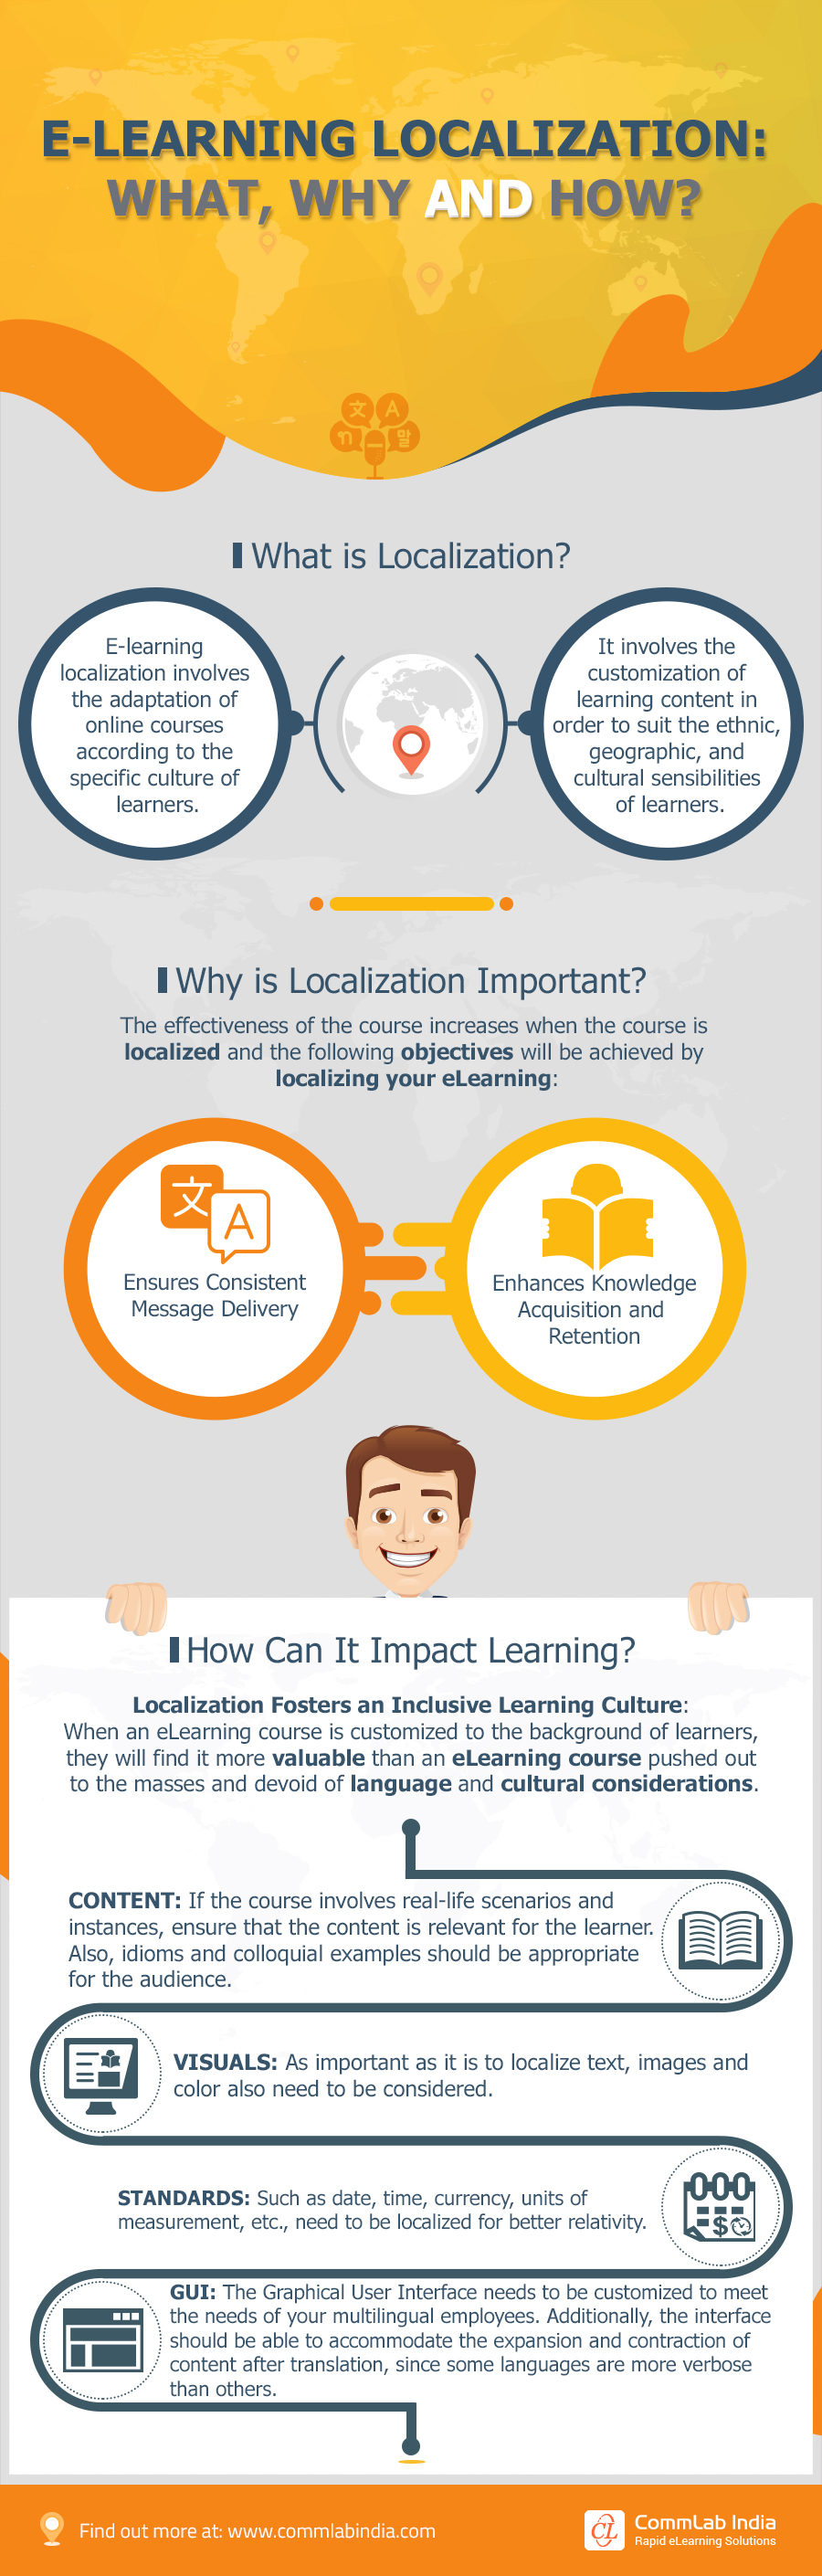 eLearning Localization: What, Why and How? [Infographic]